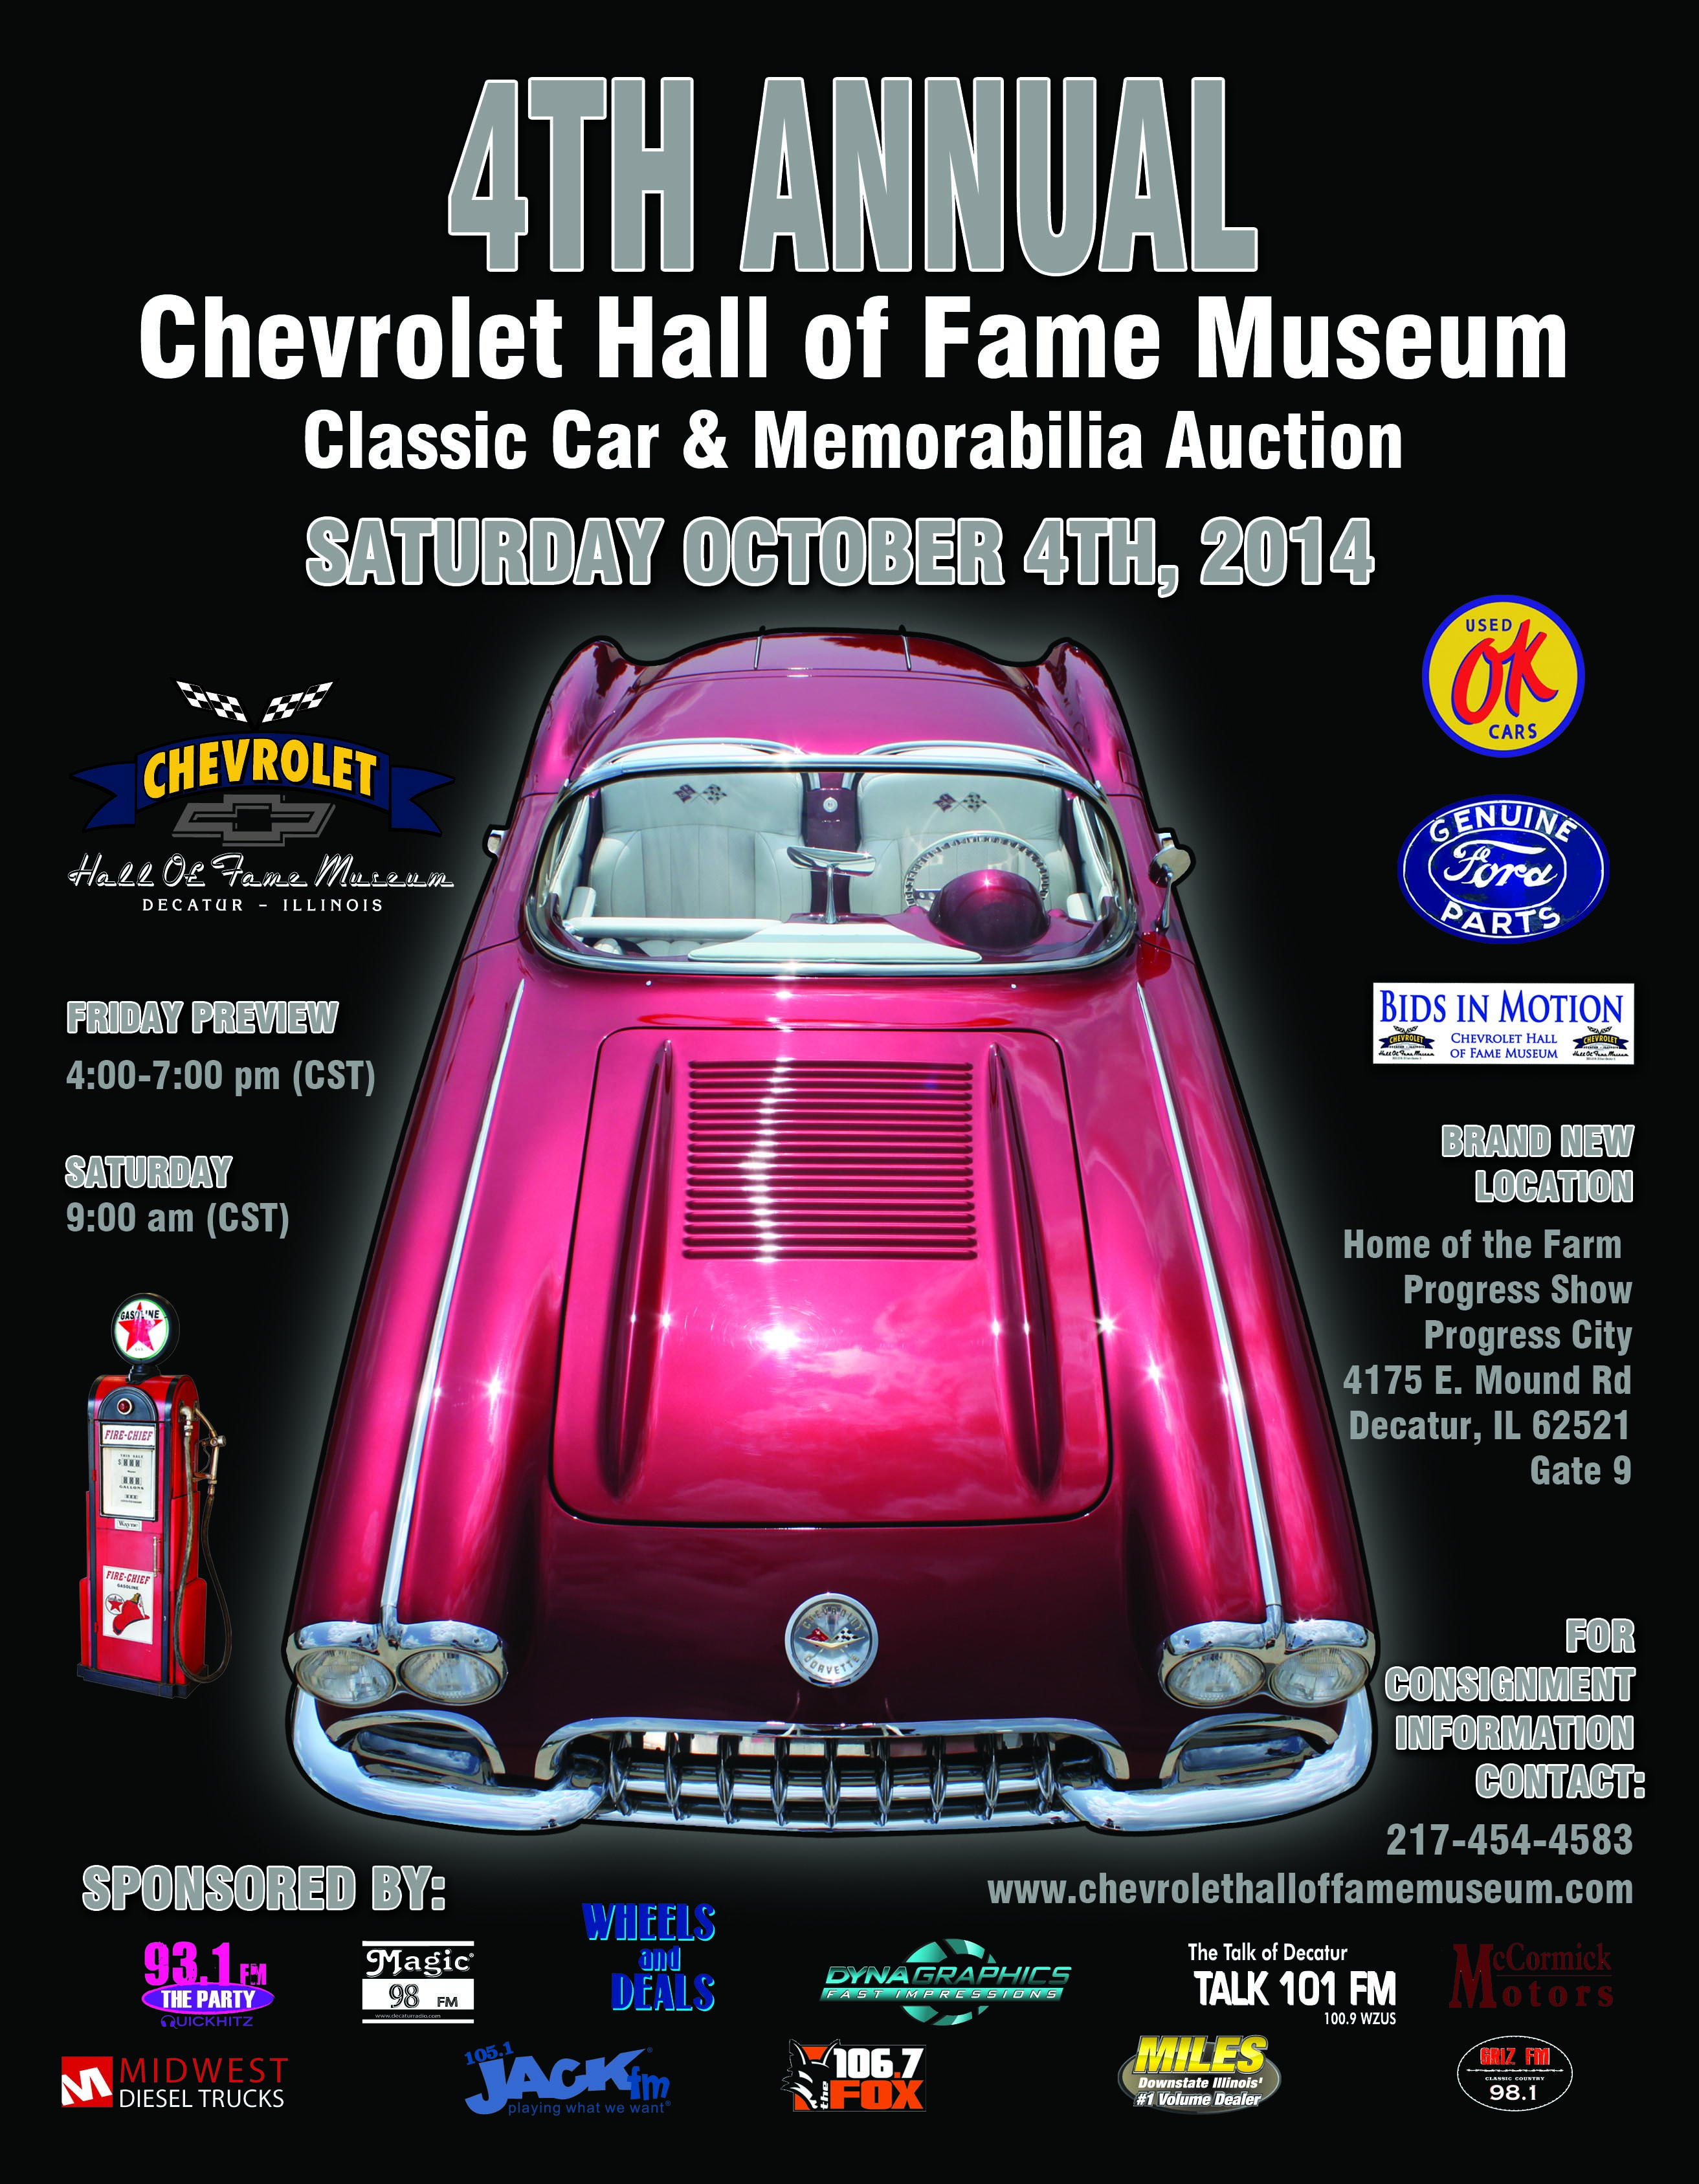 Chevrolet Hall of Fame Museum - Event Schedule